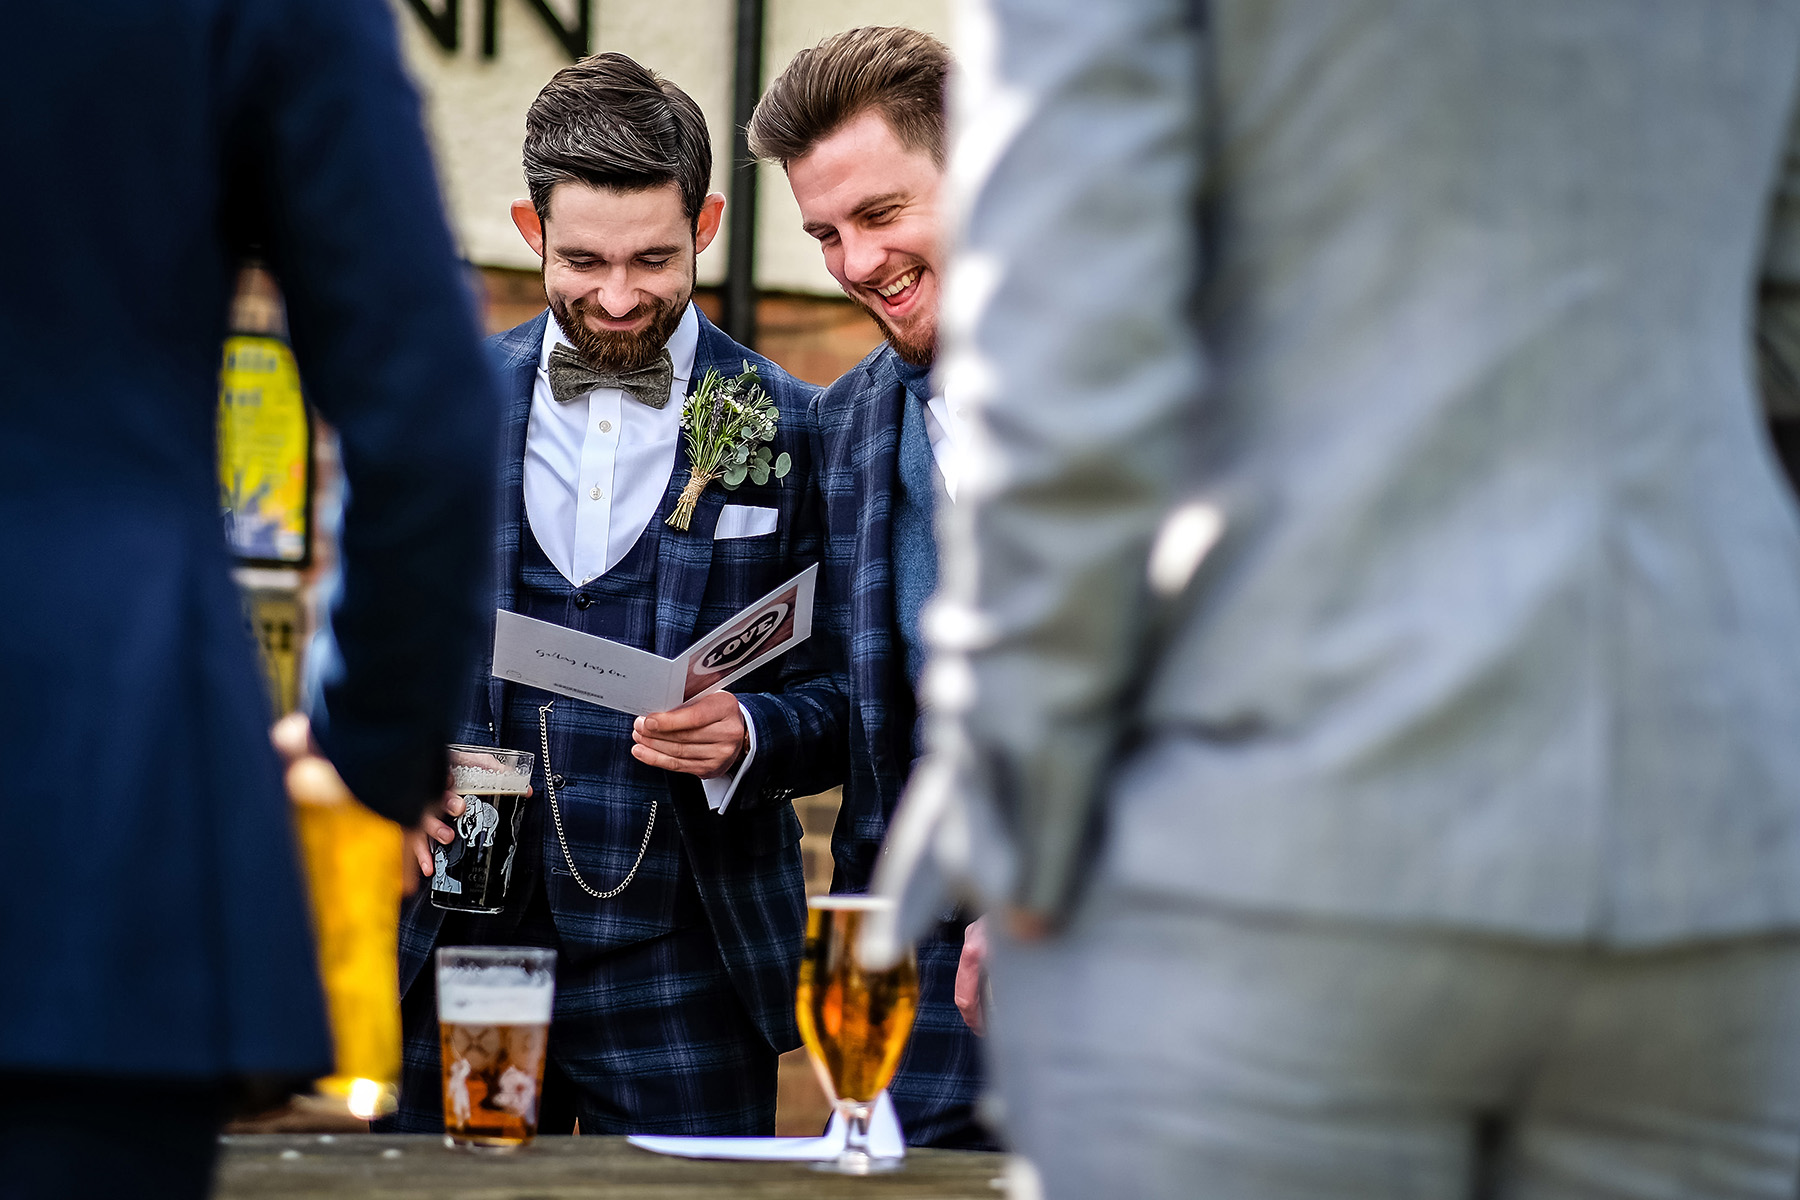 Groom at Dog and Doublet pub